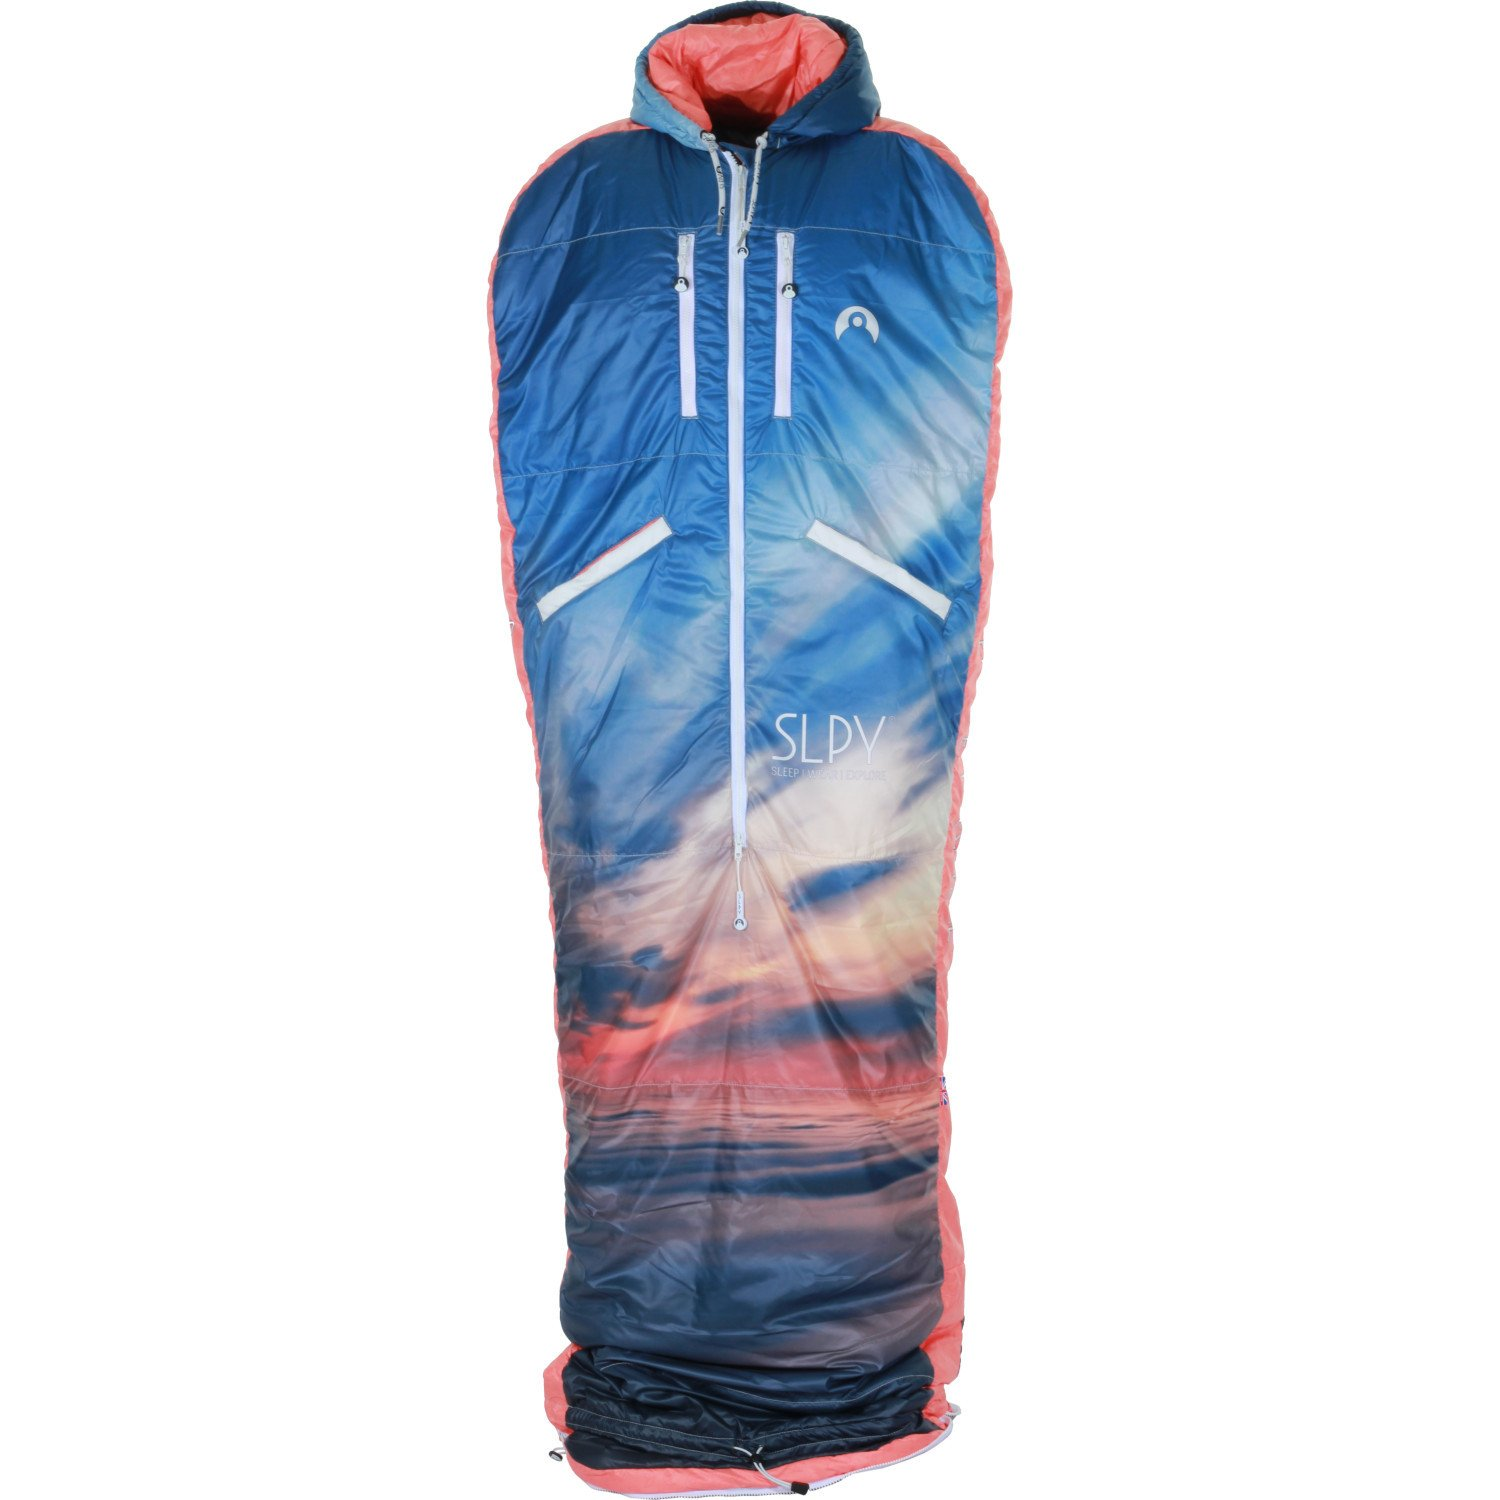 SLPY The新しいウェアラブルSleeping Bag – キッズSleepy X Small Above the Clouds B01IQMXFL4